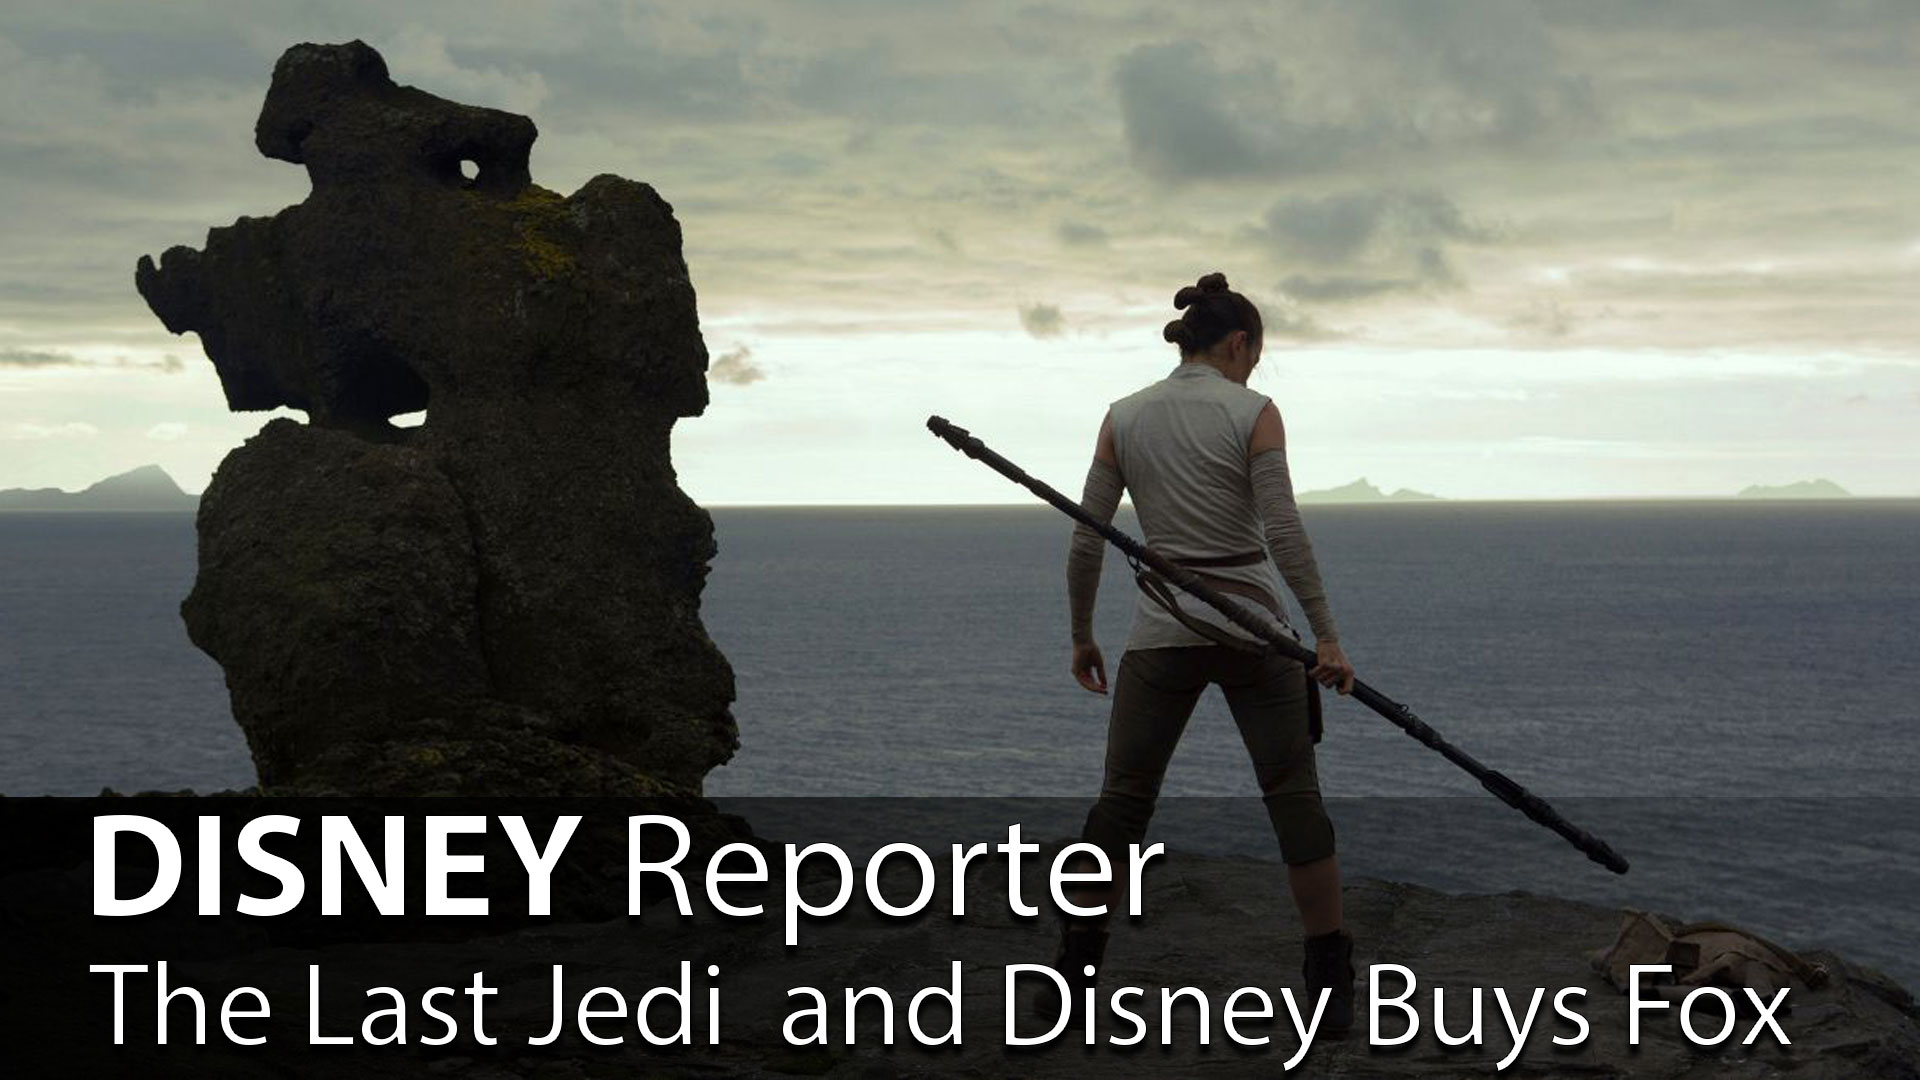 The Last Jedi and Disney Buys Fox – DISNEY Reporter